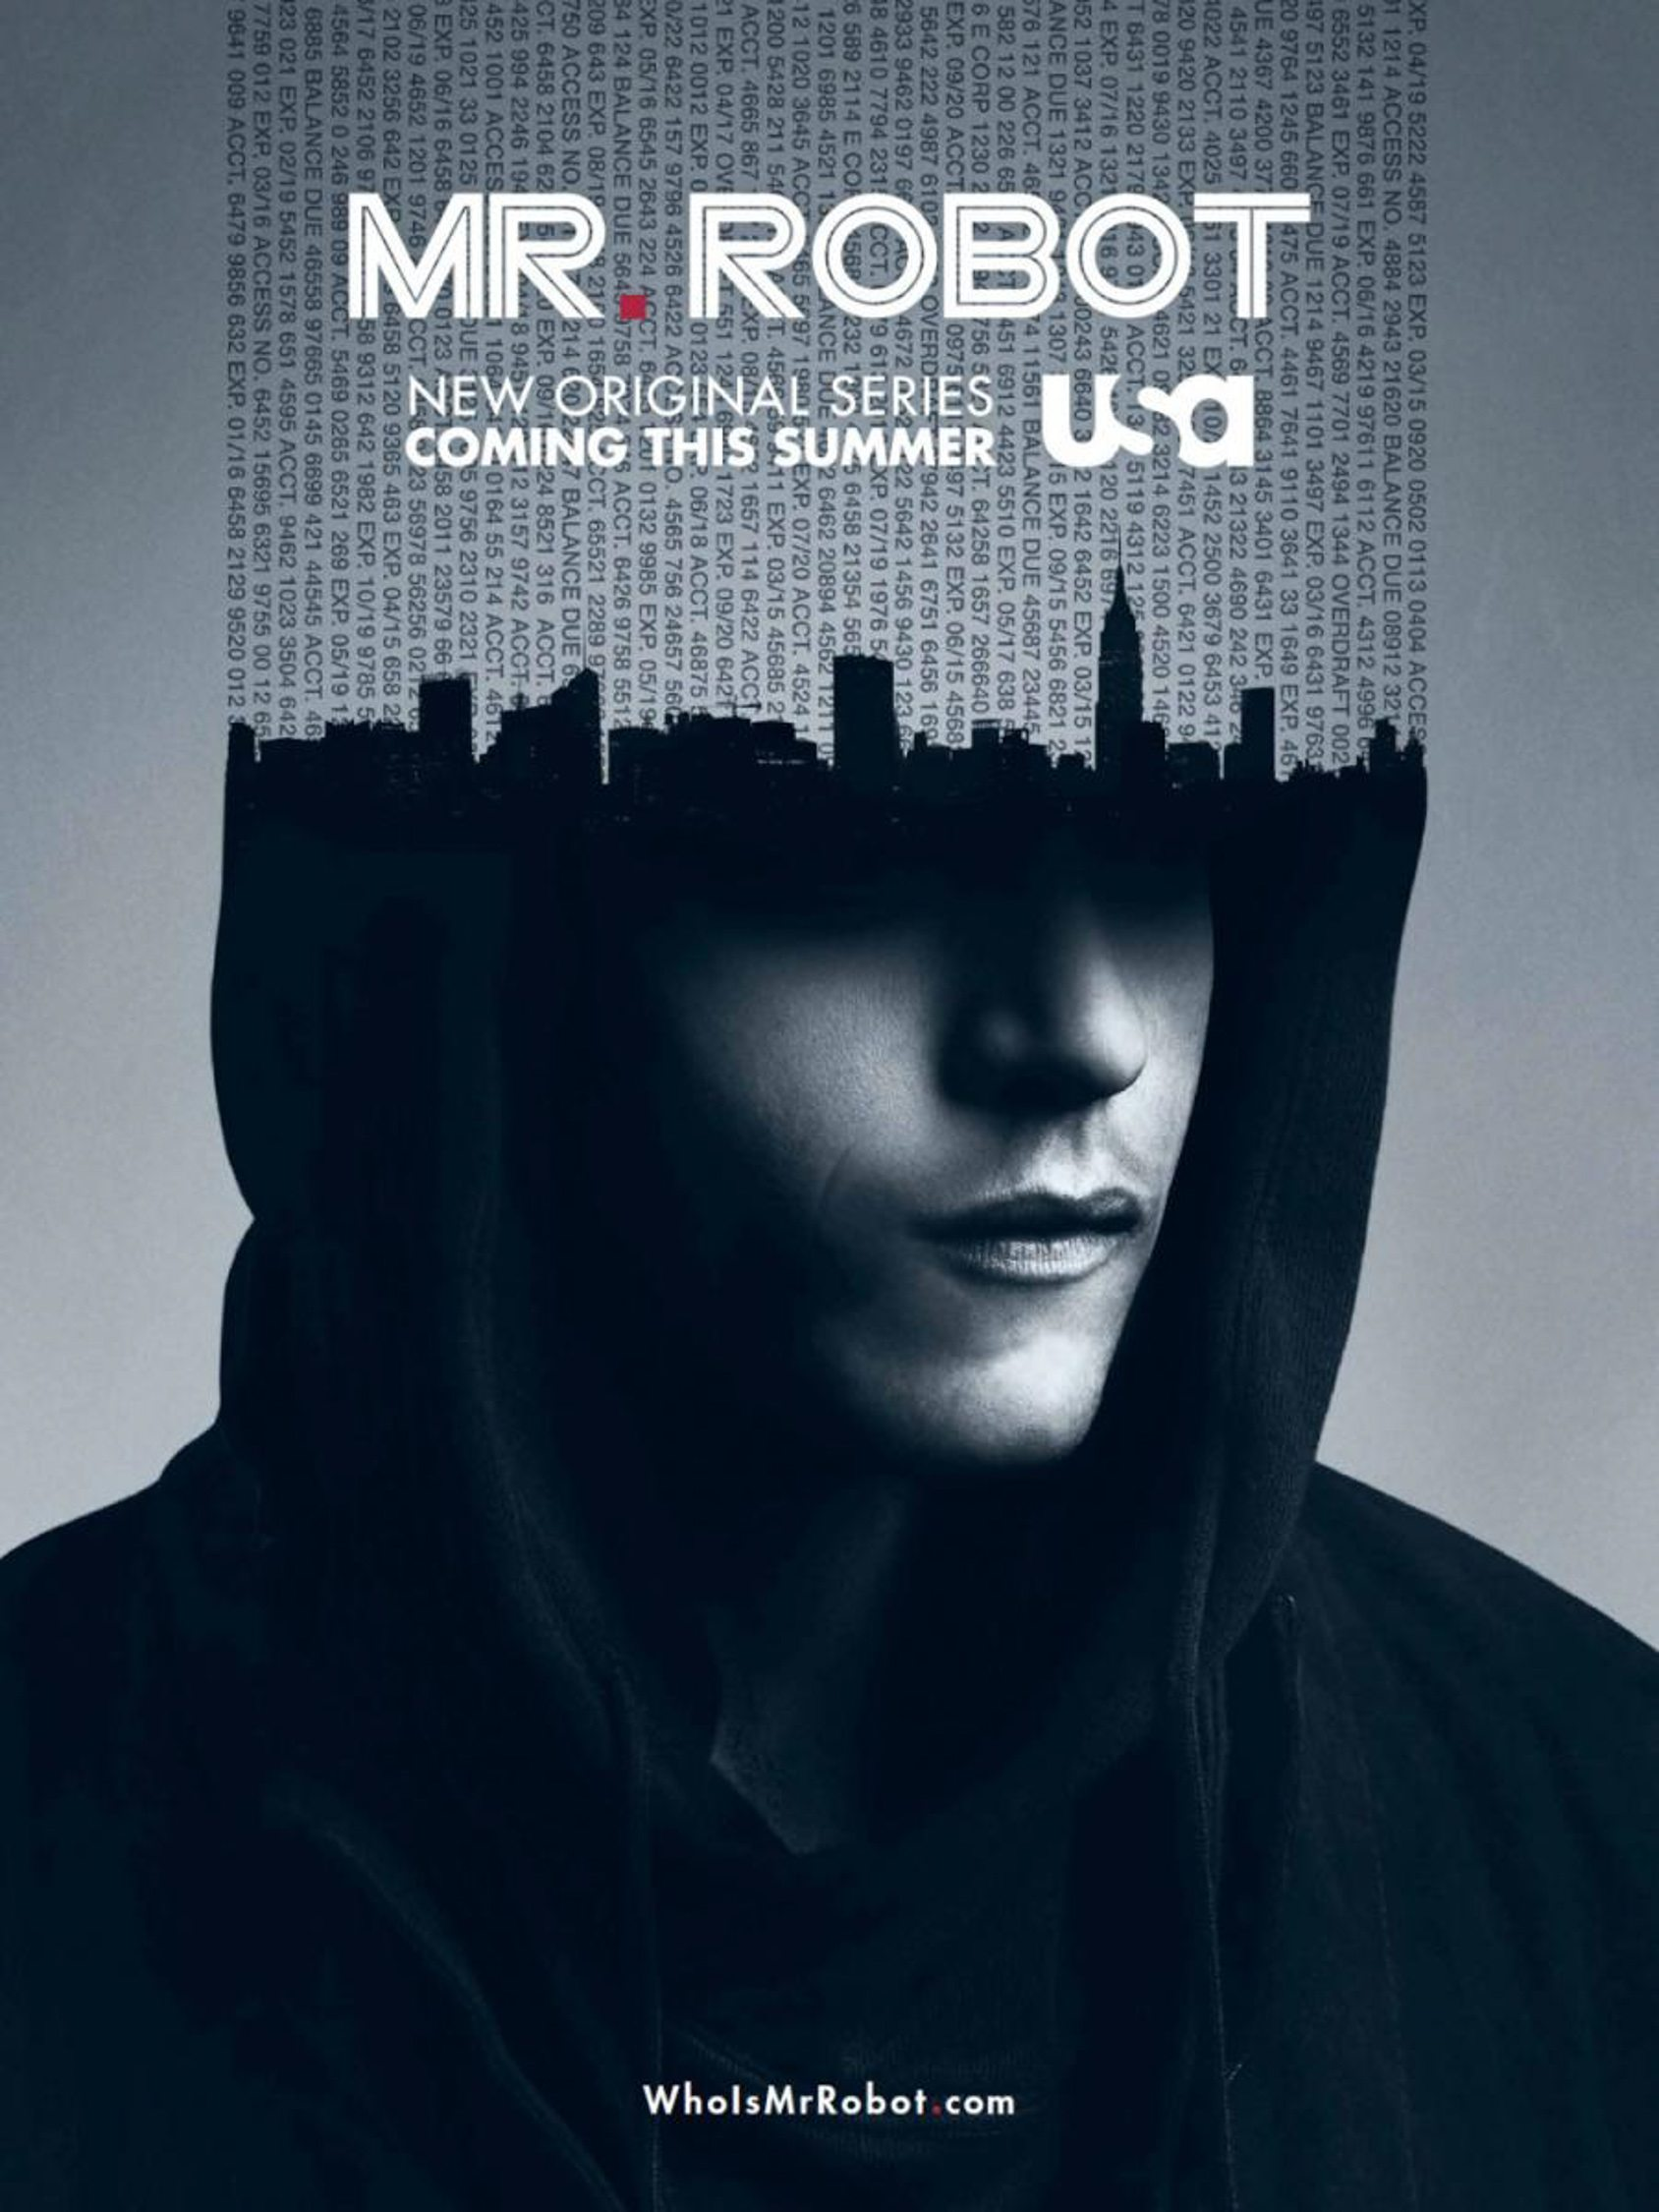 Mr. Robot (900 x 1200) VoicesFILM.com